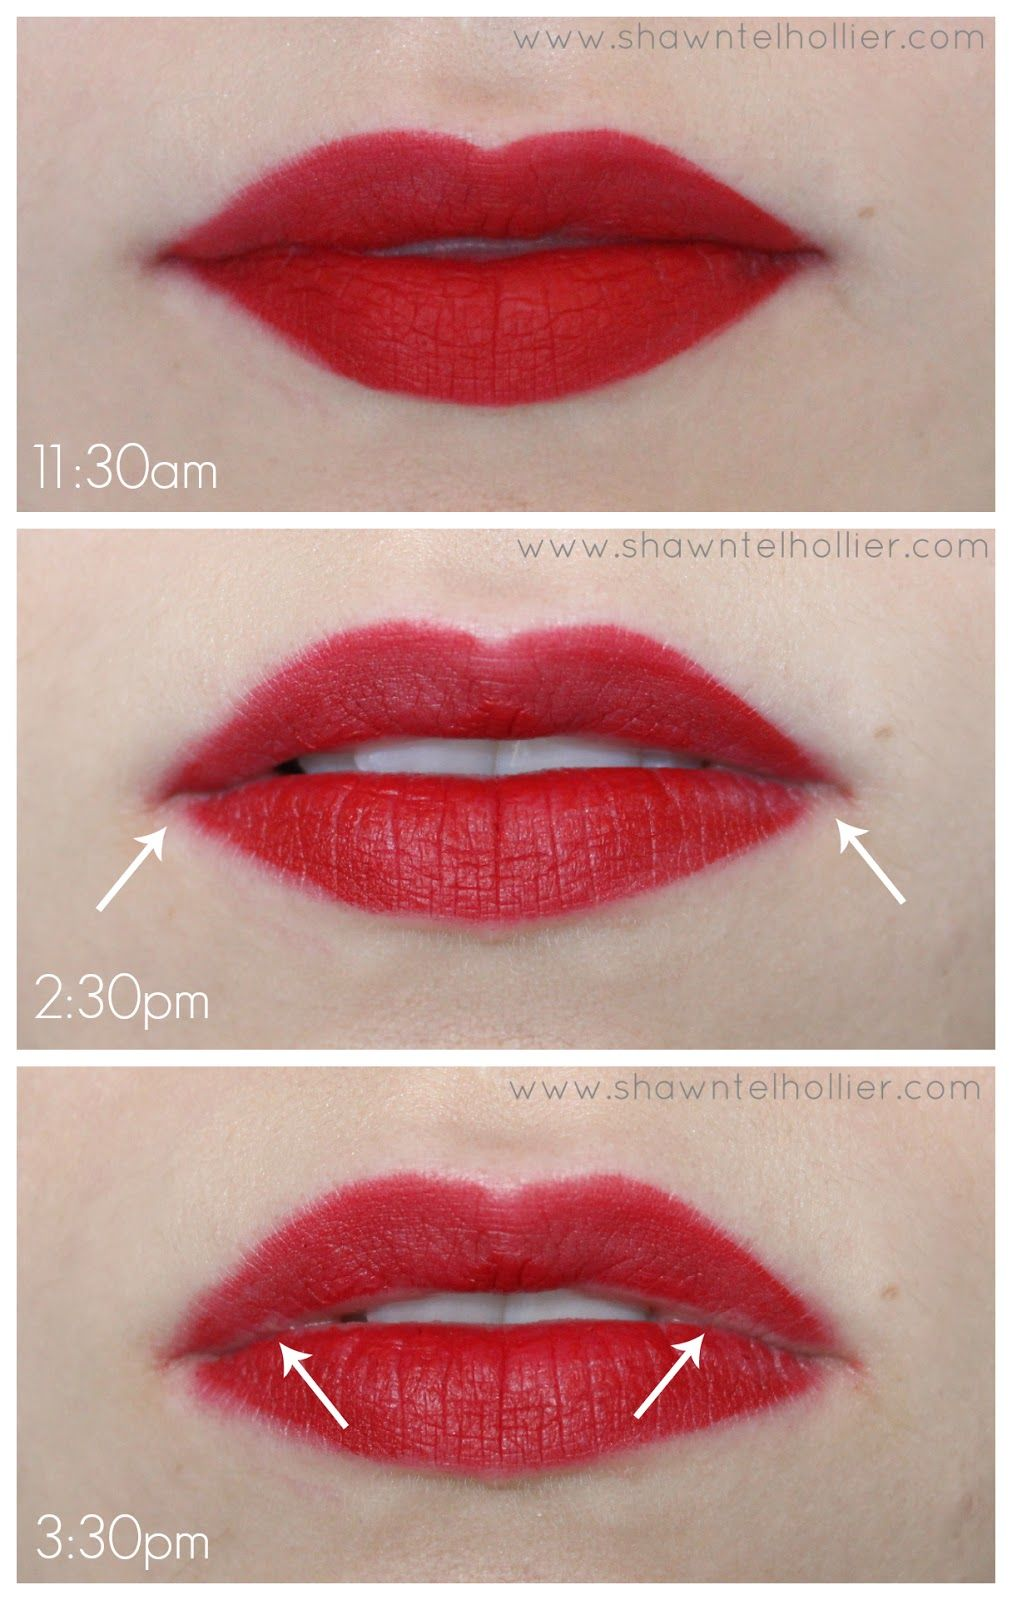 Bien connu Anastasia Beverly Hills Liquid Lips Review + Wear Test (American  BO72